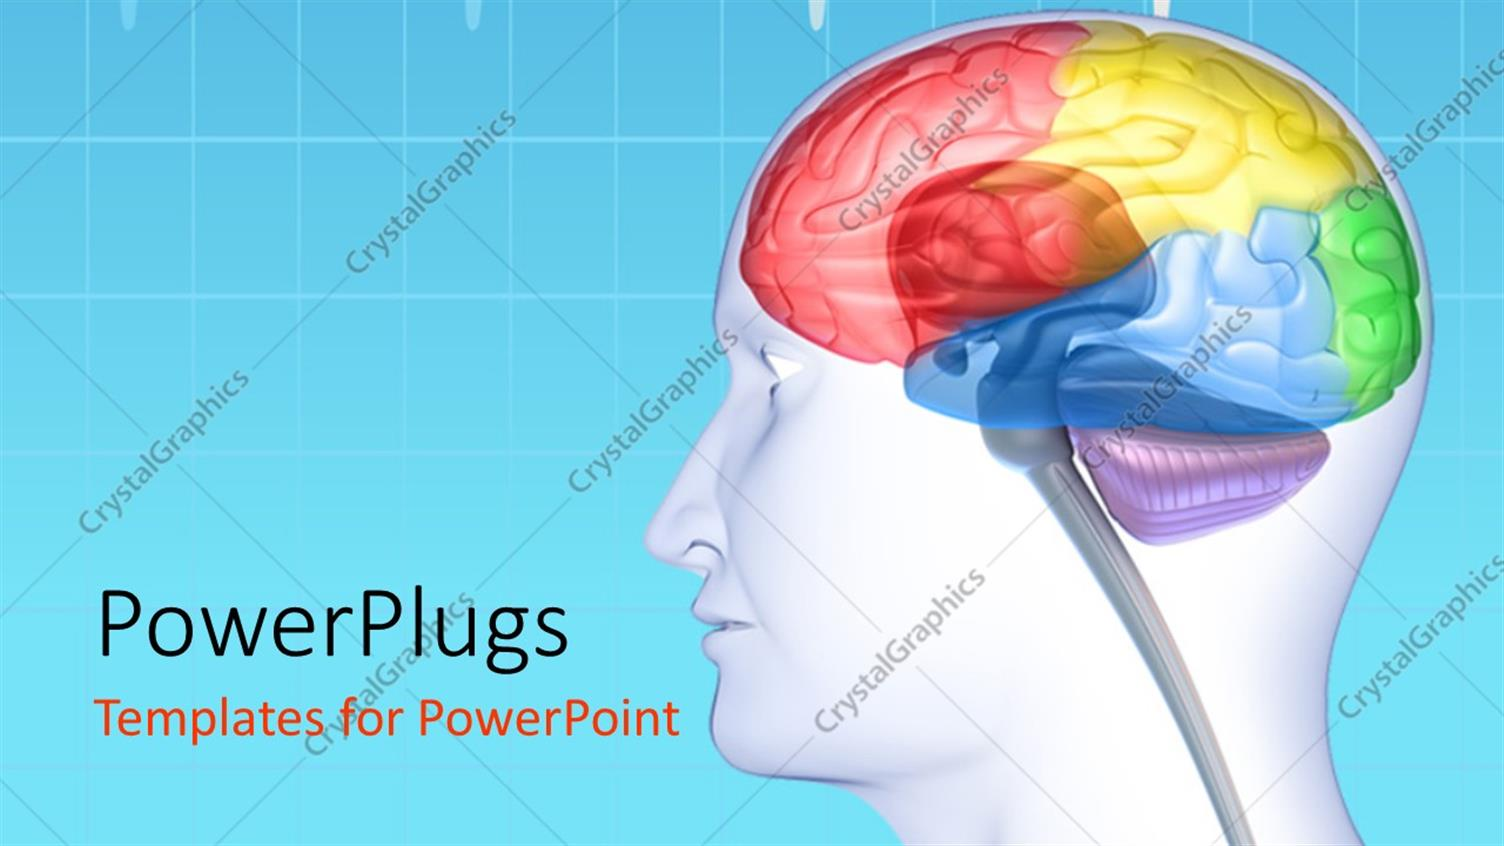 PowerPoint Template Displaying Brain Lobes in Head Silhouette with ECG Wave in the Background